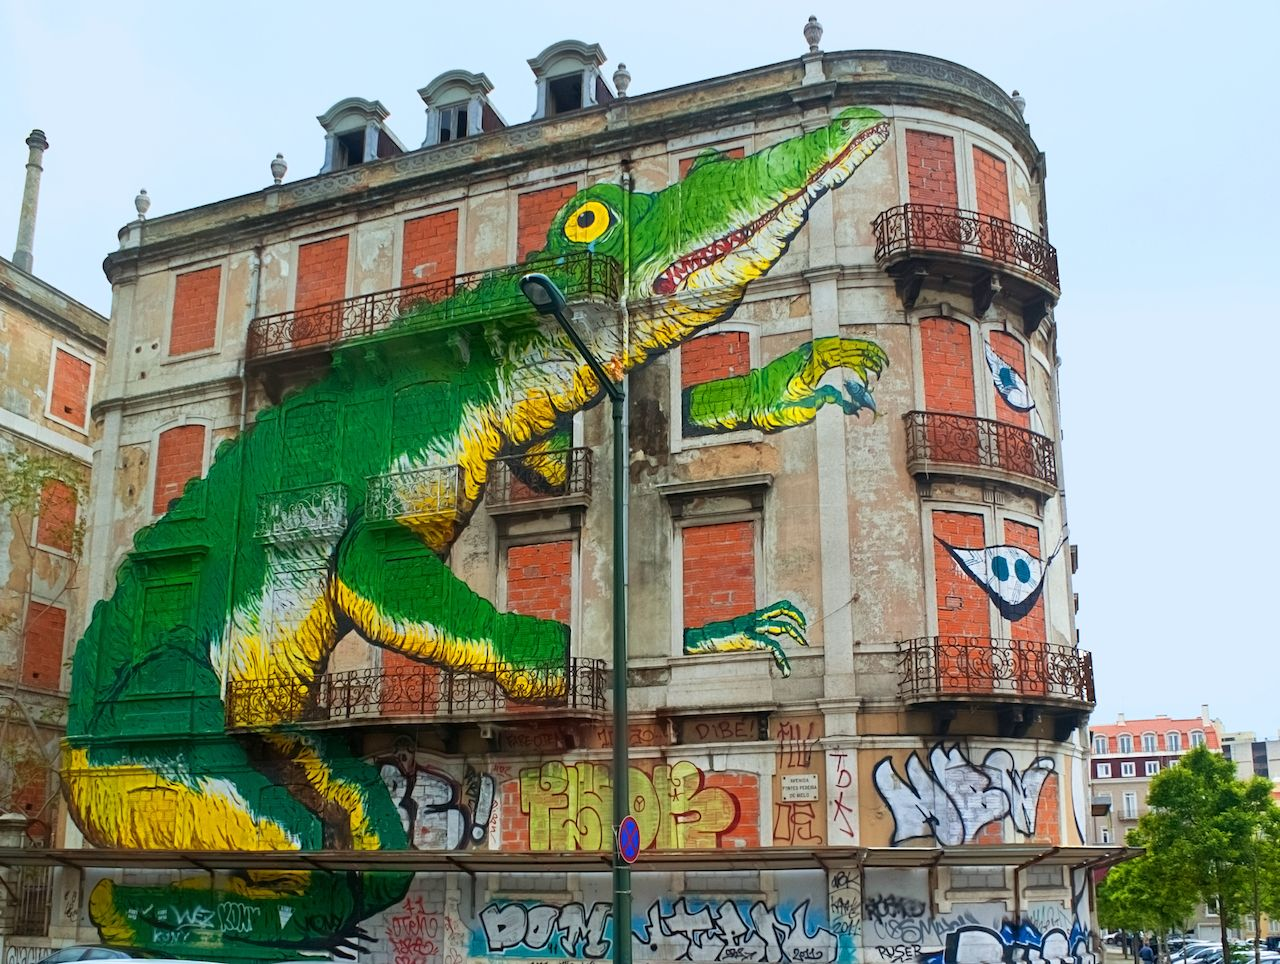 Building with a green lizard on it street art in Lisbon, Portugal